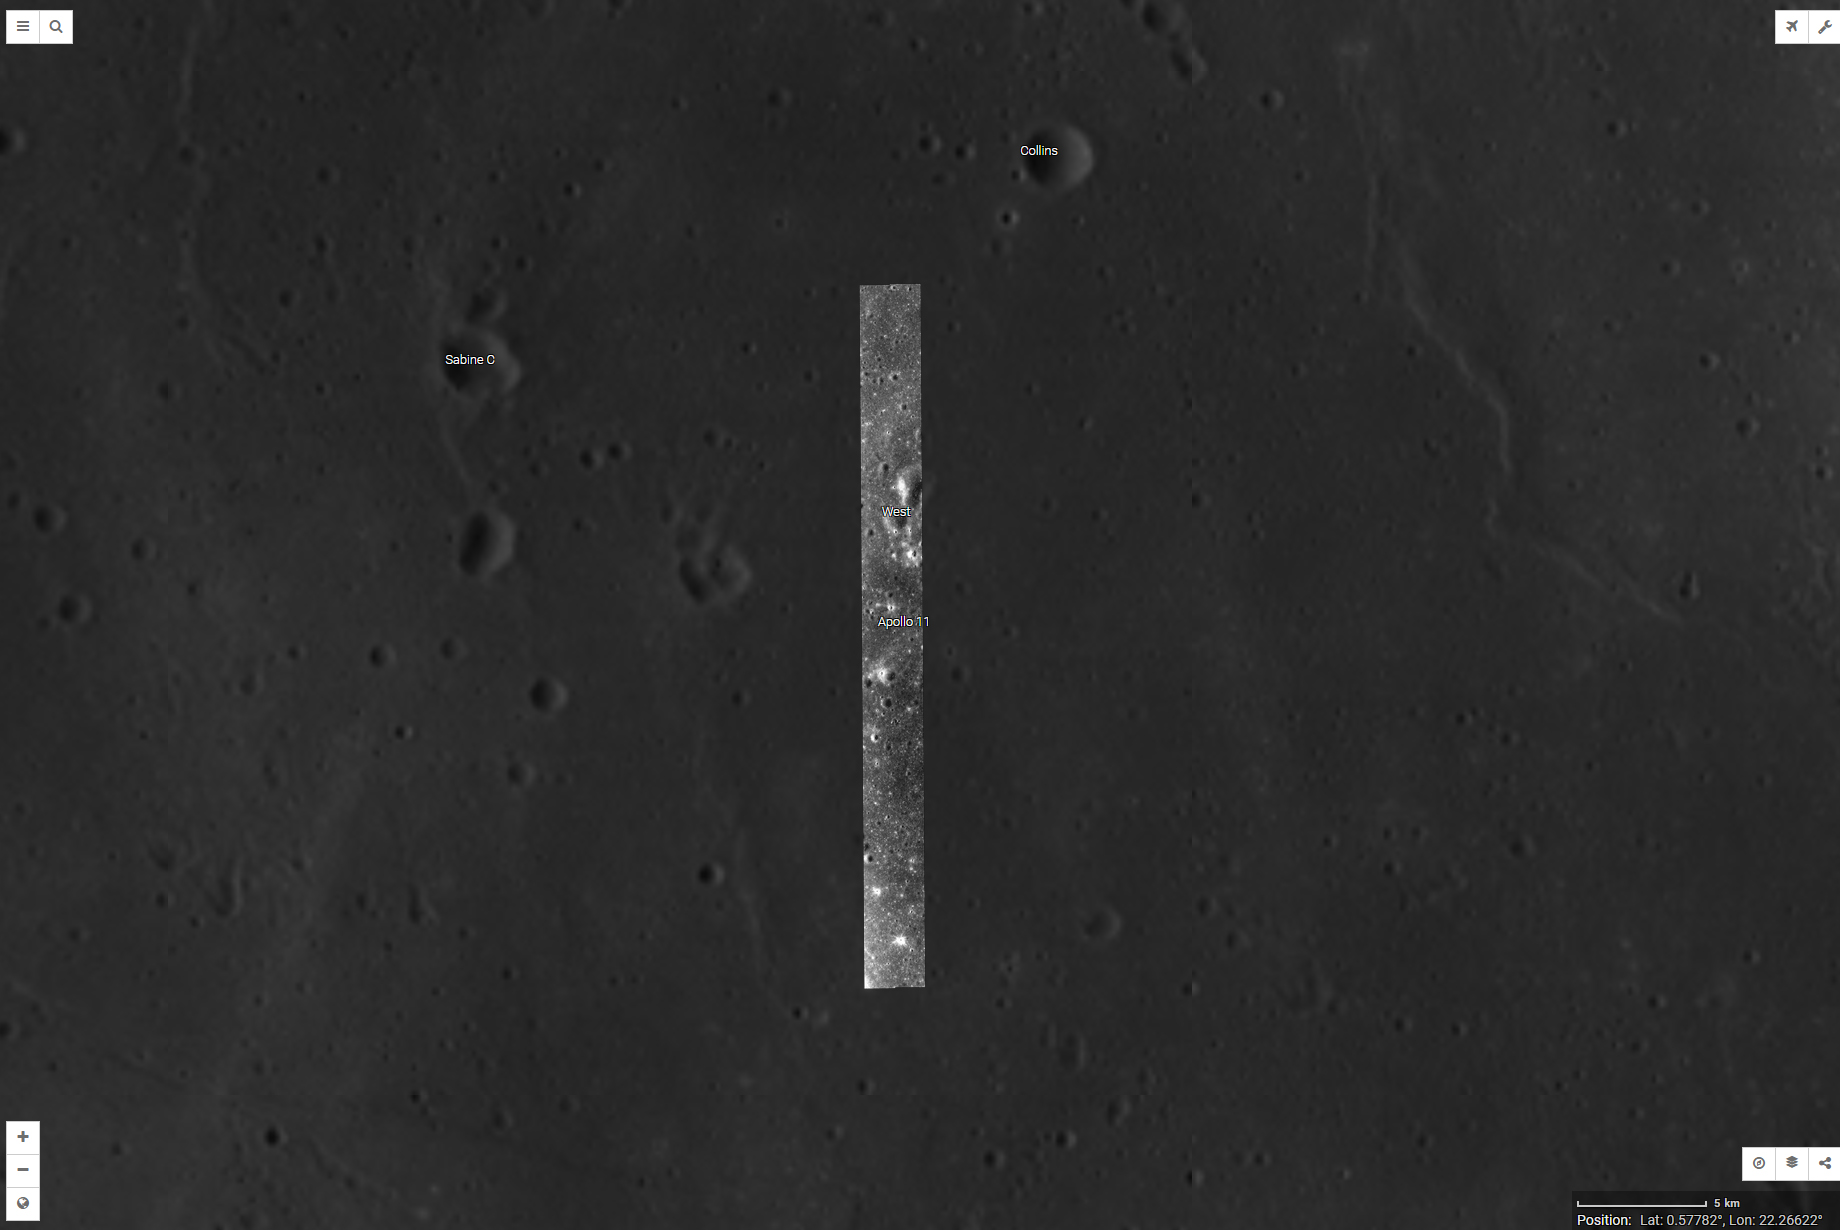 Hierachy of Resolution on the Moon